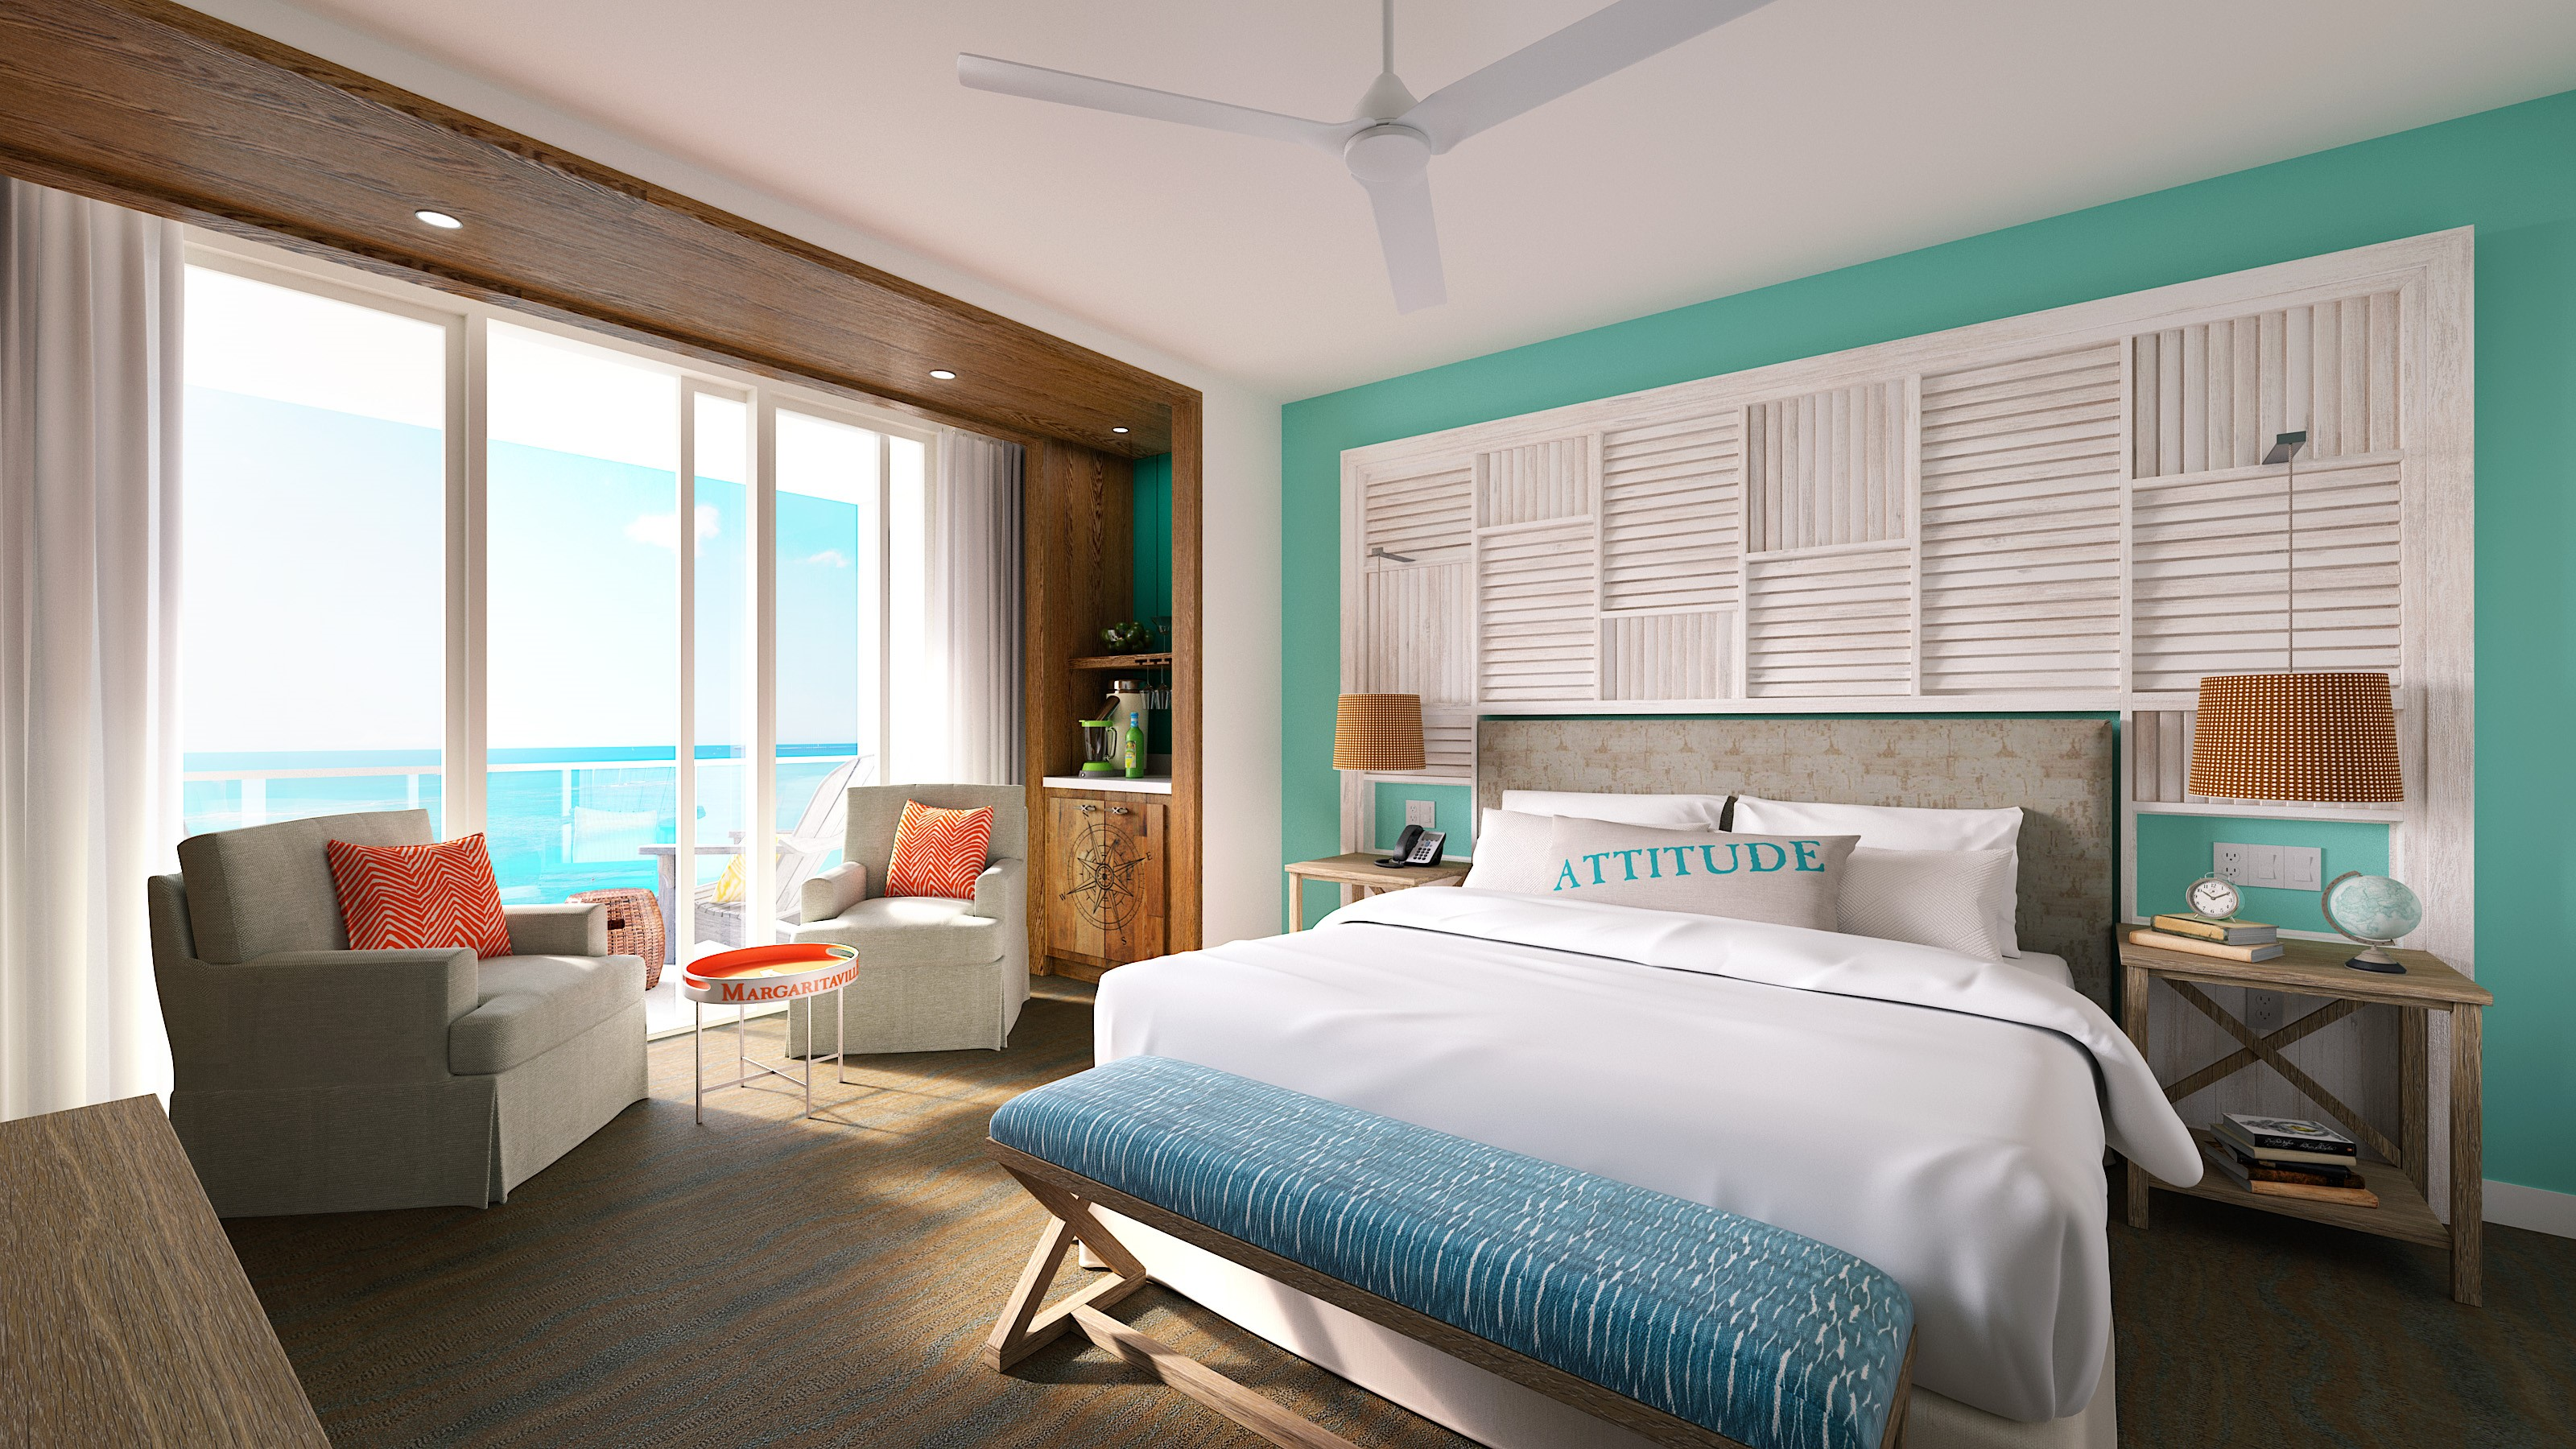 VENICE: Margaritaville Hollywood Beach Resort is Open – And